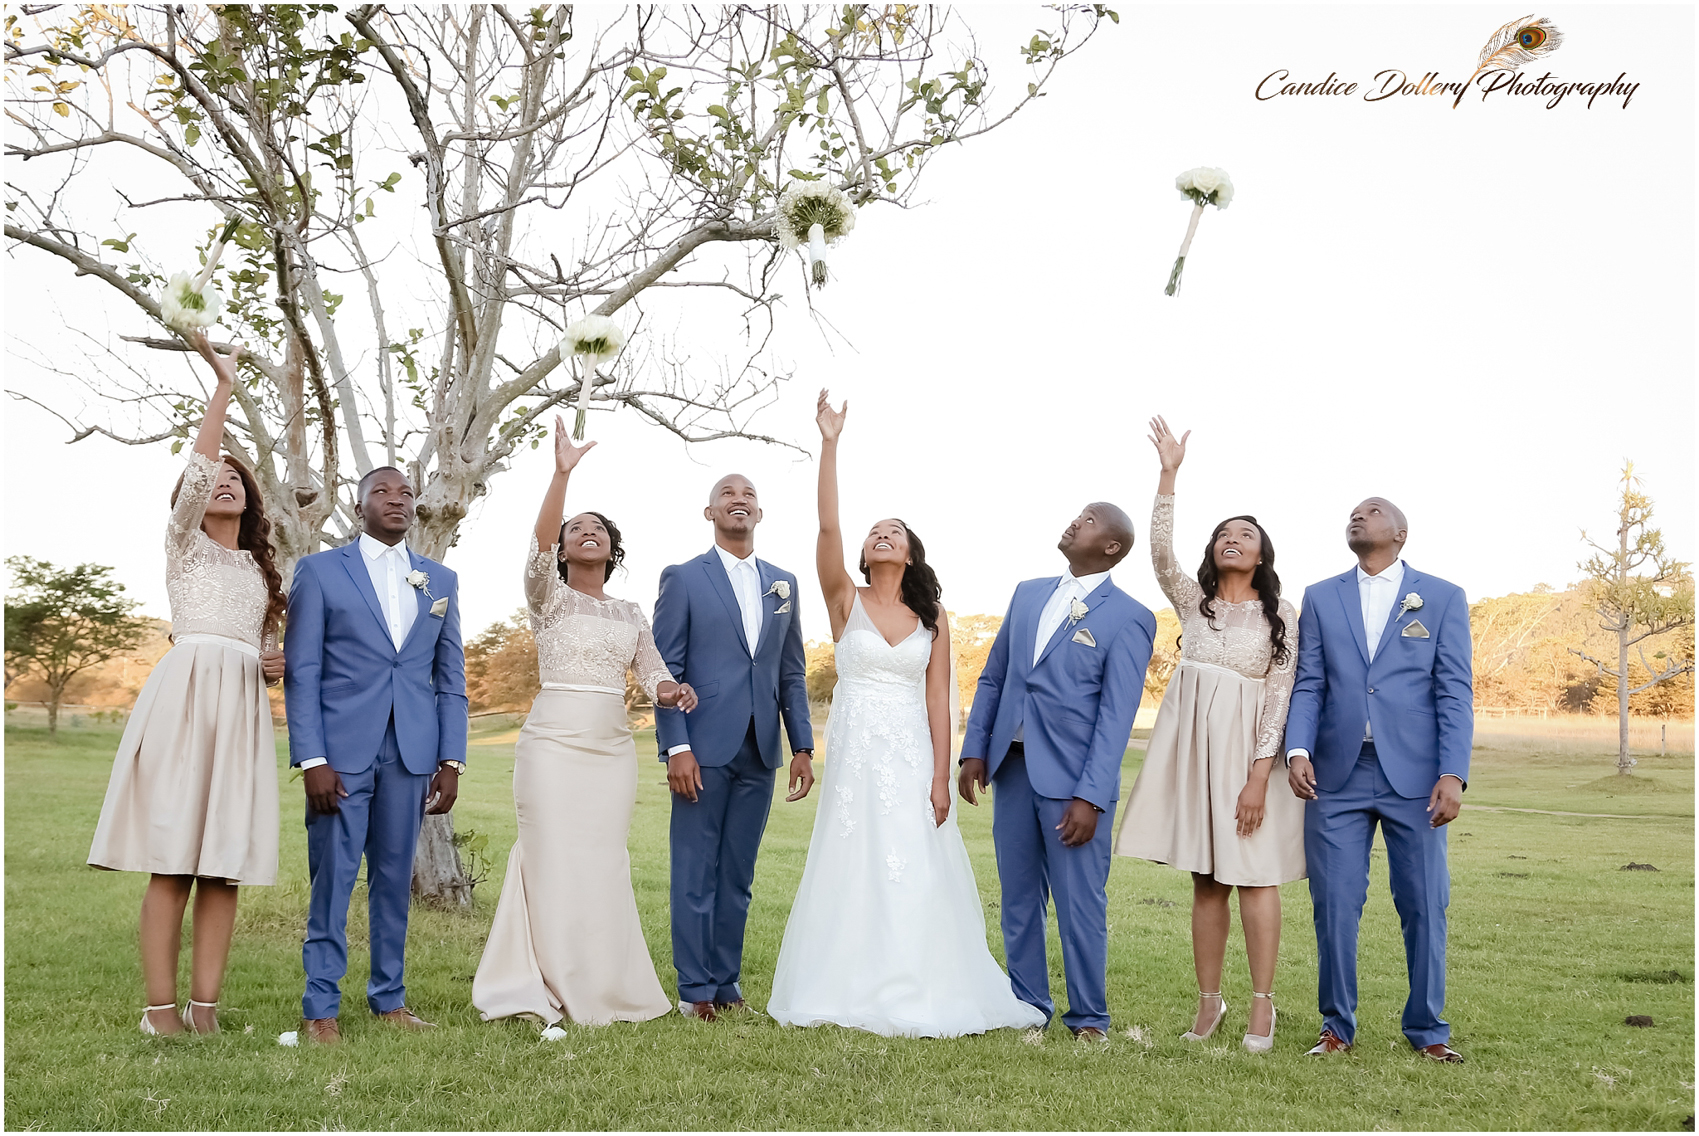 lelethu-kgotsos-wedding-candice-dollery-photography_1678